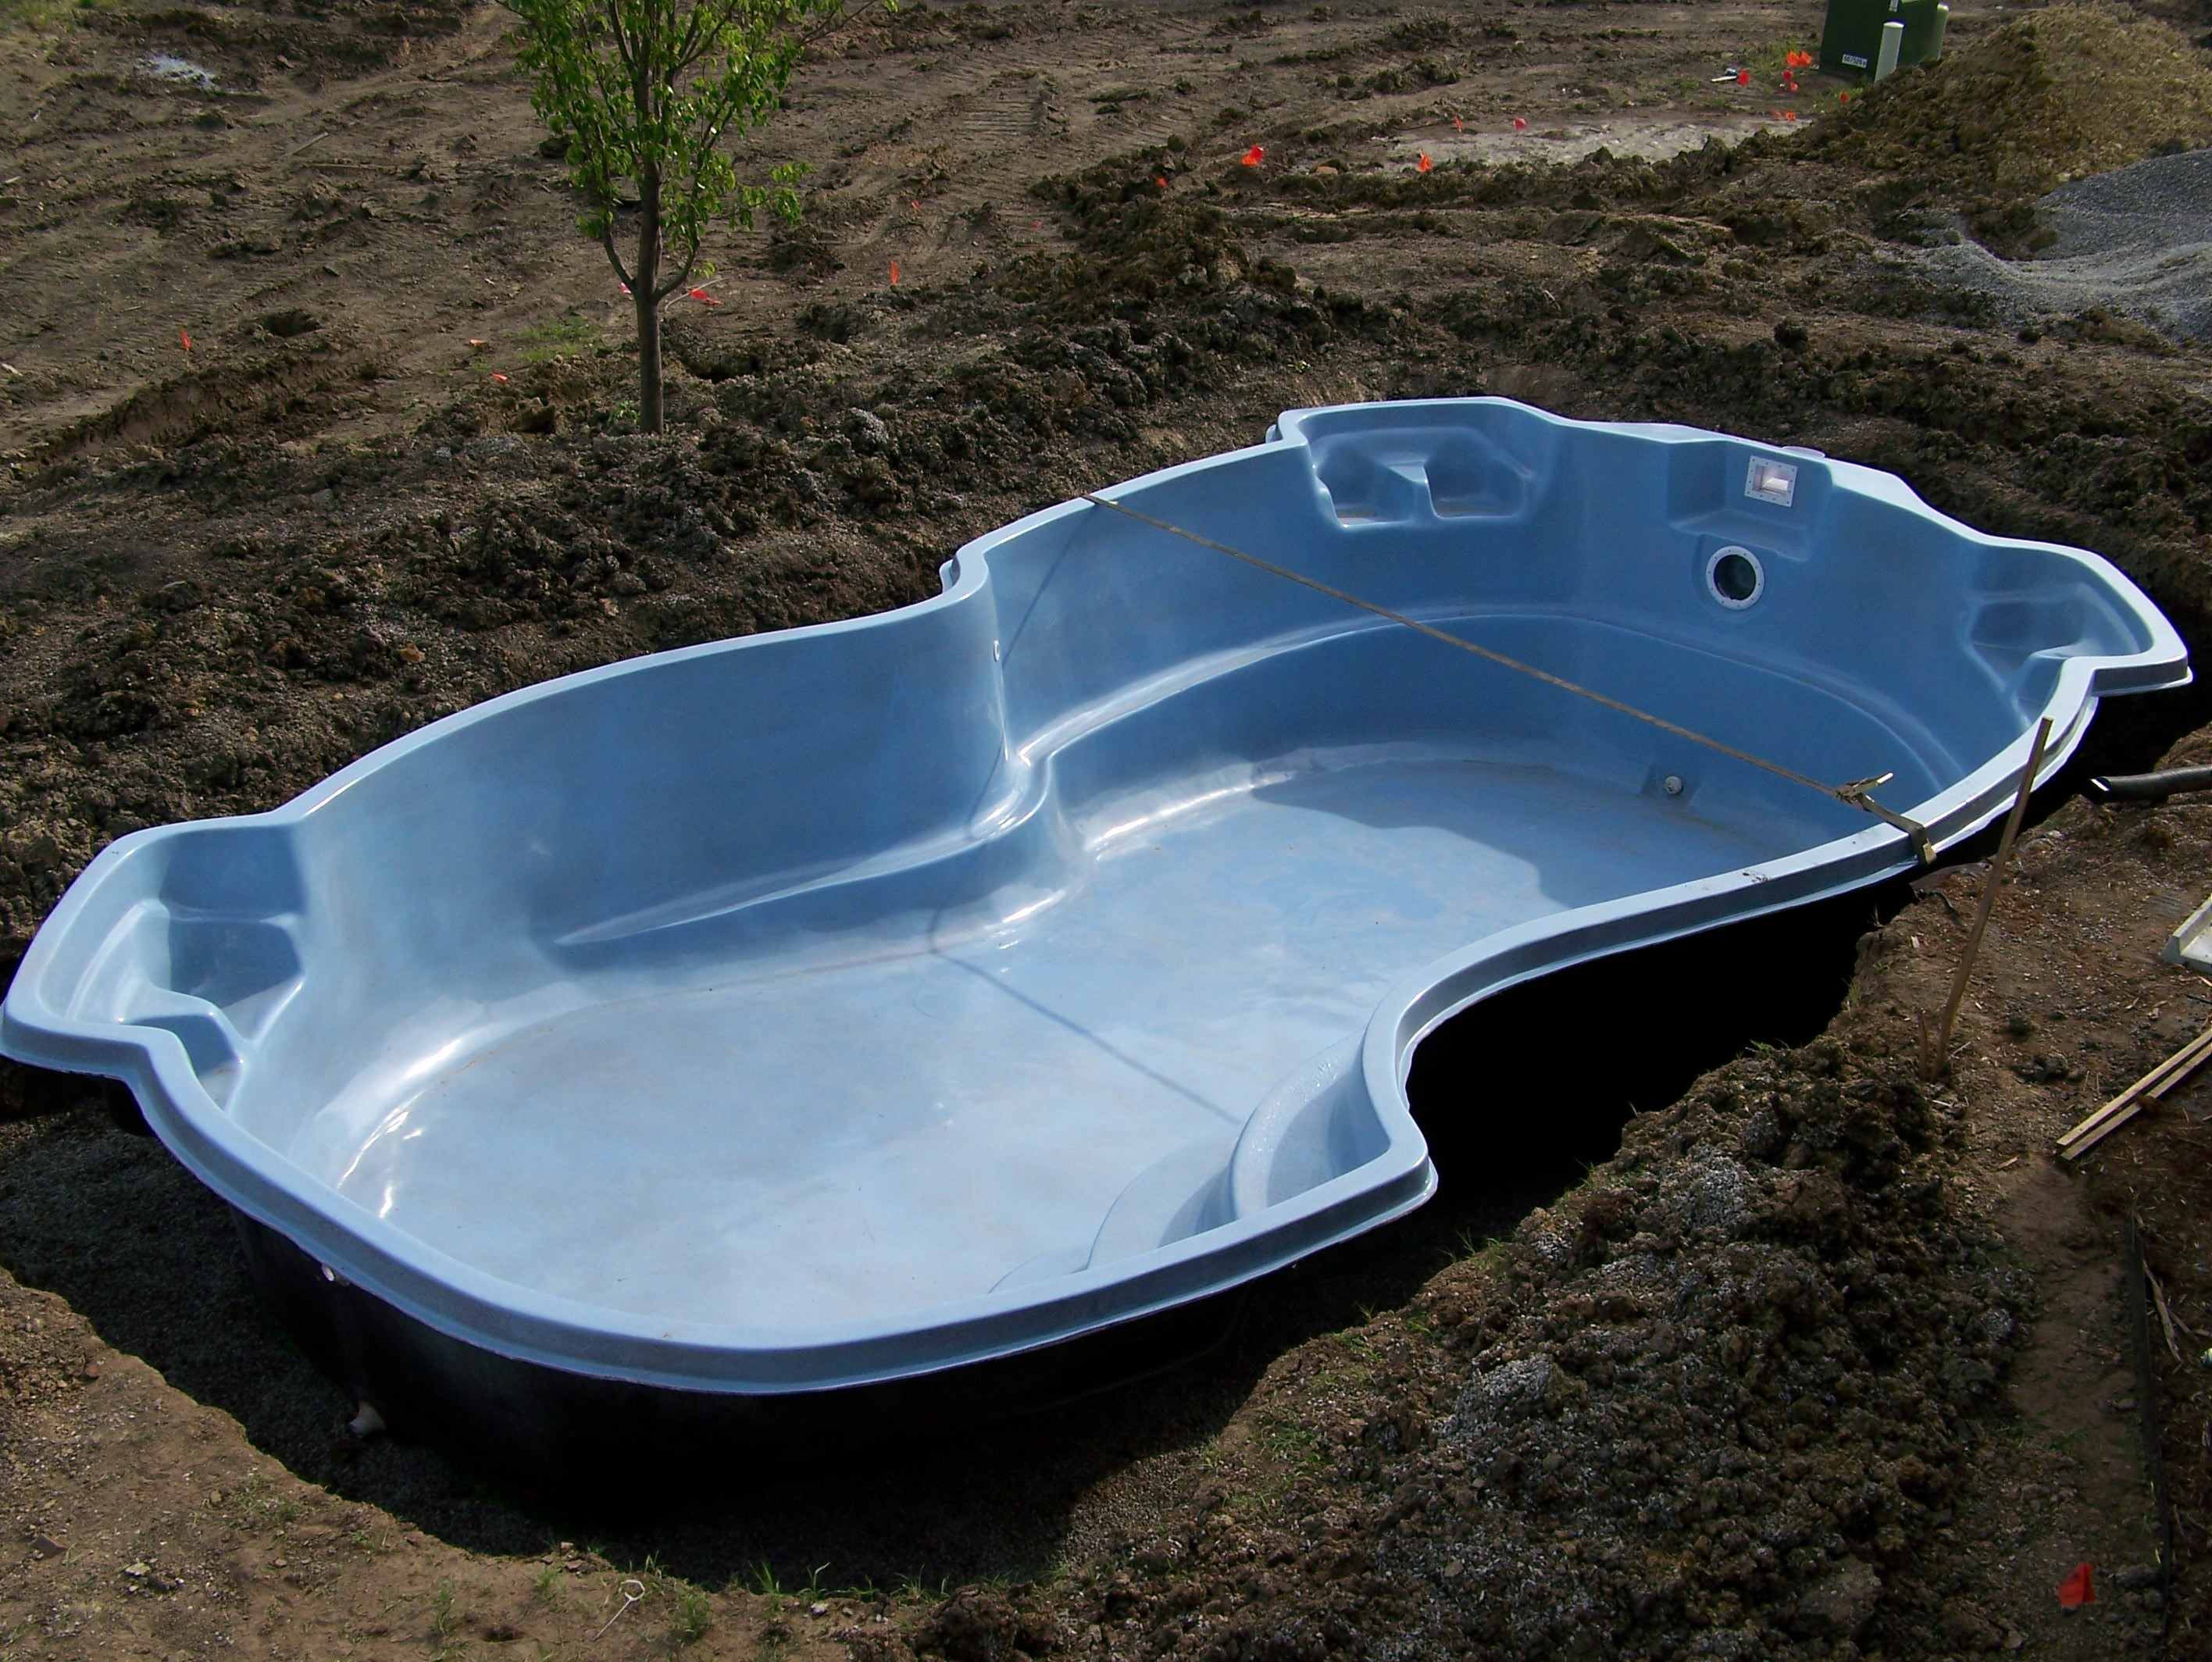 Fiberglass pools list of shapes swimming pool contractor tulsa ok Fiberglass swimming pool installation